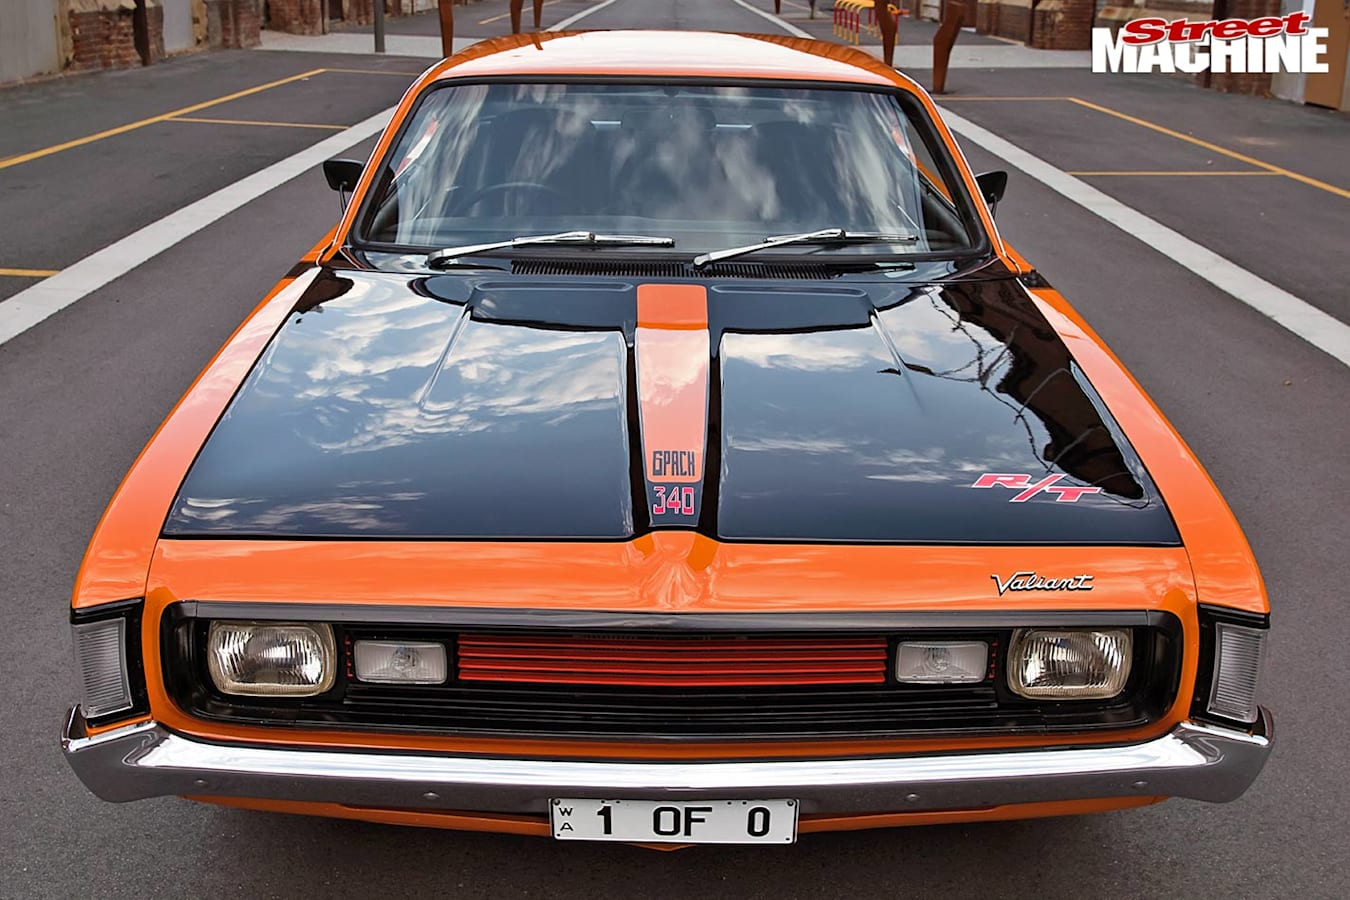 Valiant VH pacer front